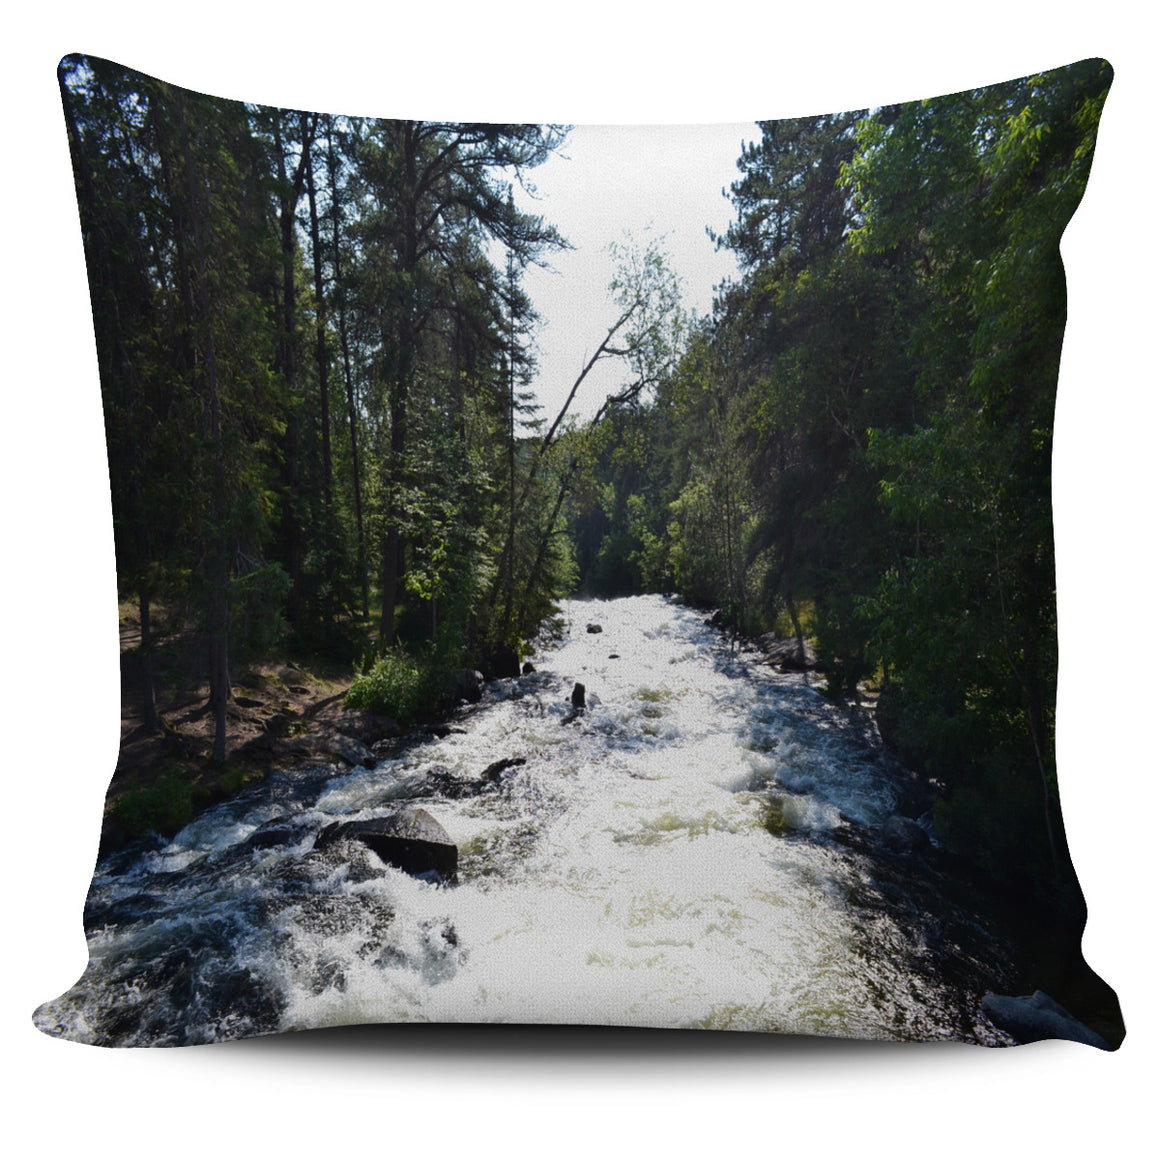 Relaxing Rapids Themed Pillow Cover